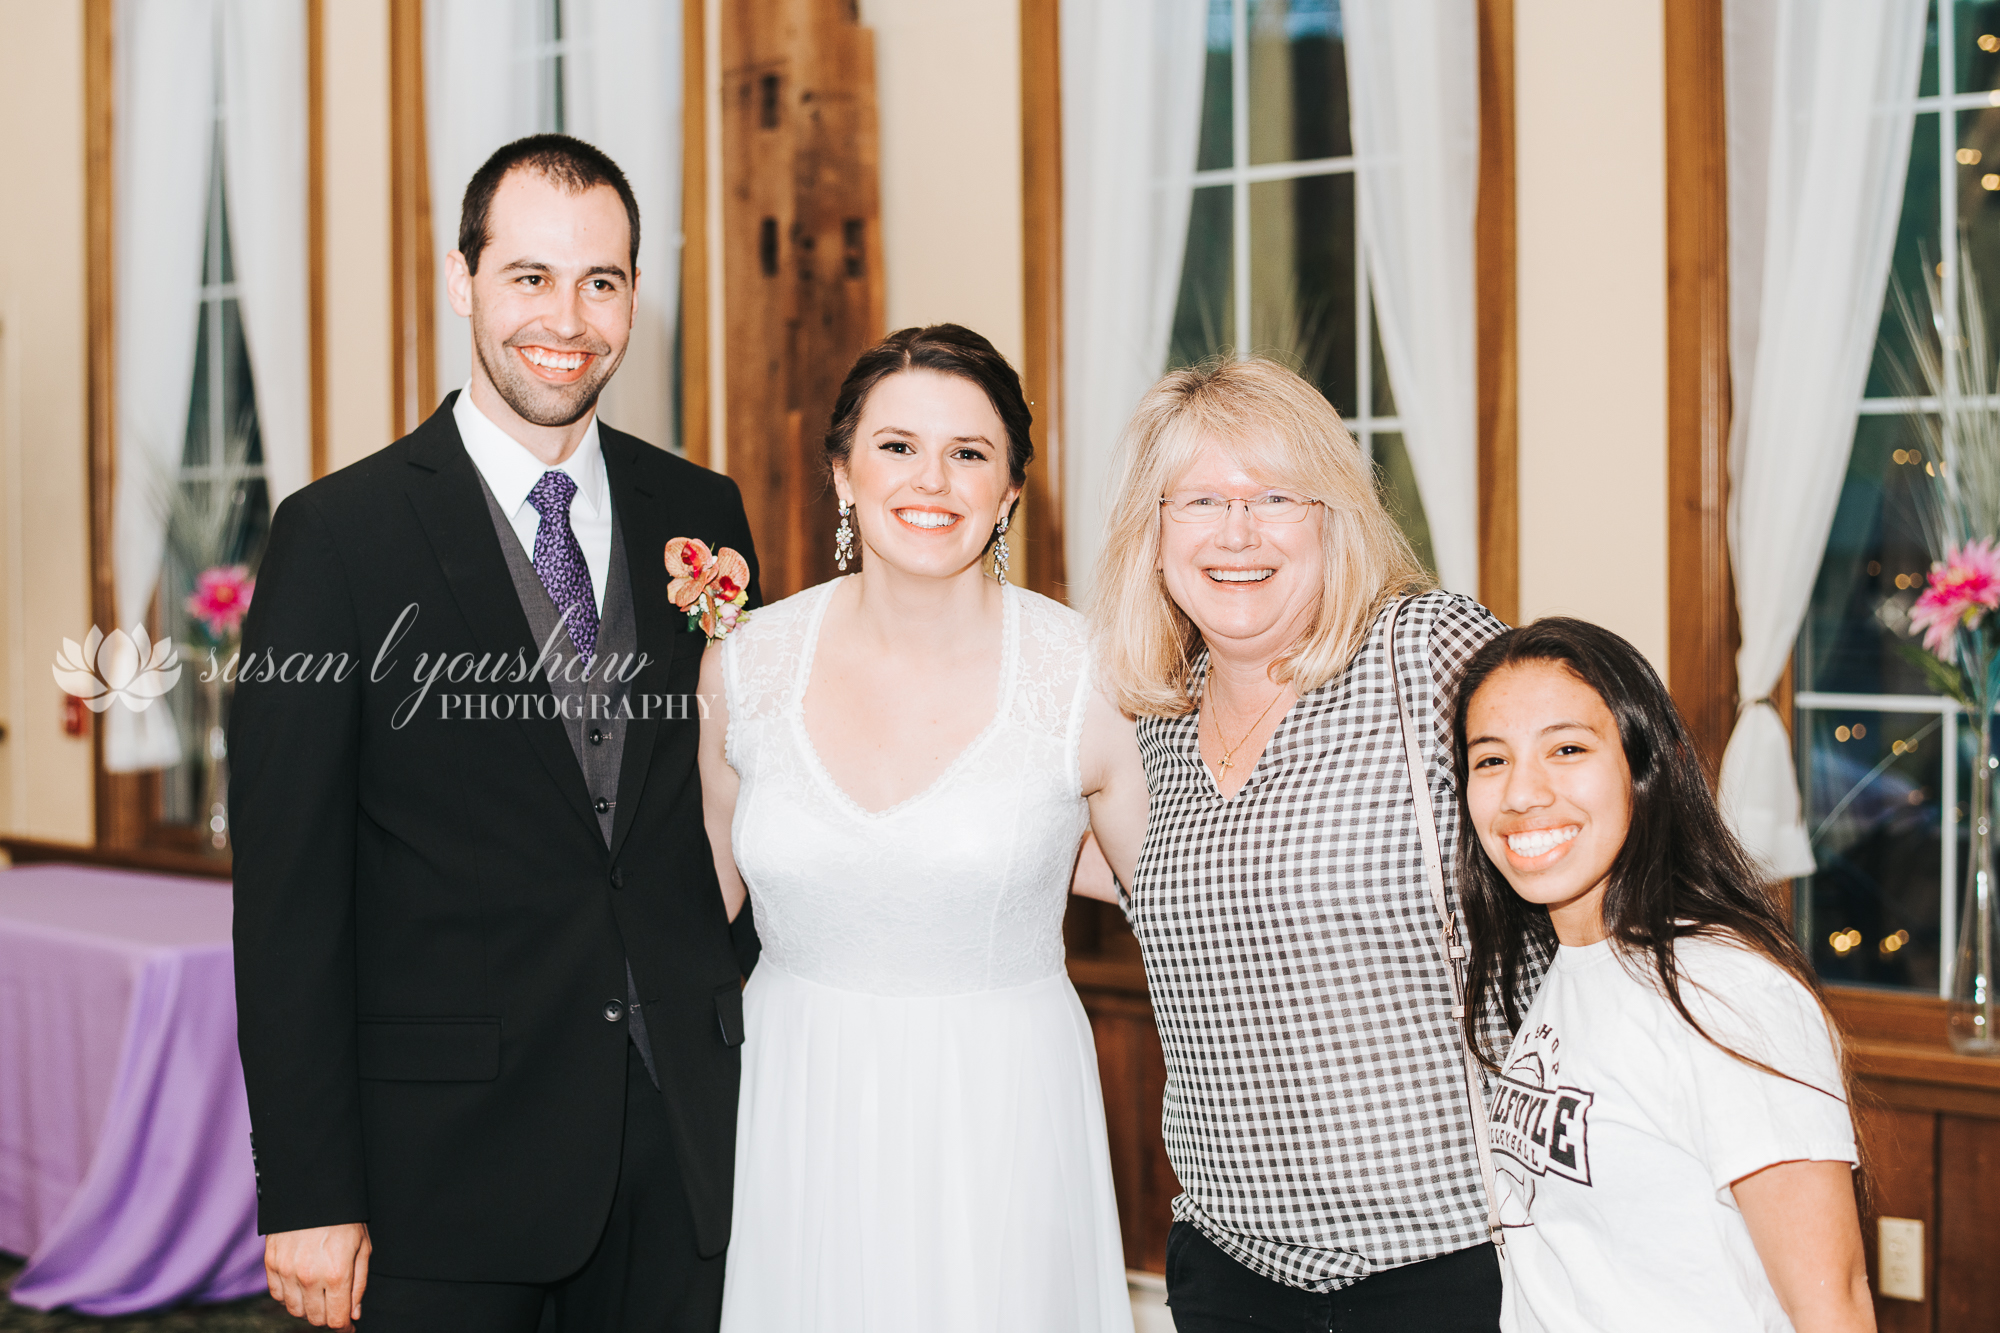 Adena and  Erik Wedding 05-17-2019 SLY Photography-106.jpg